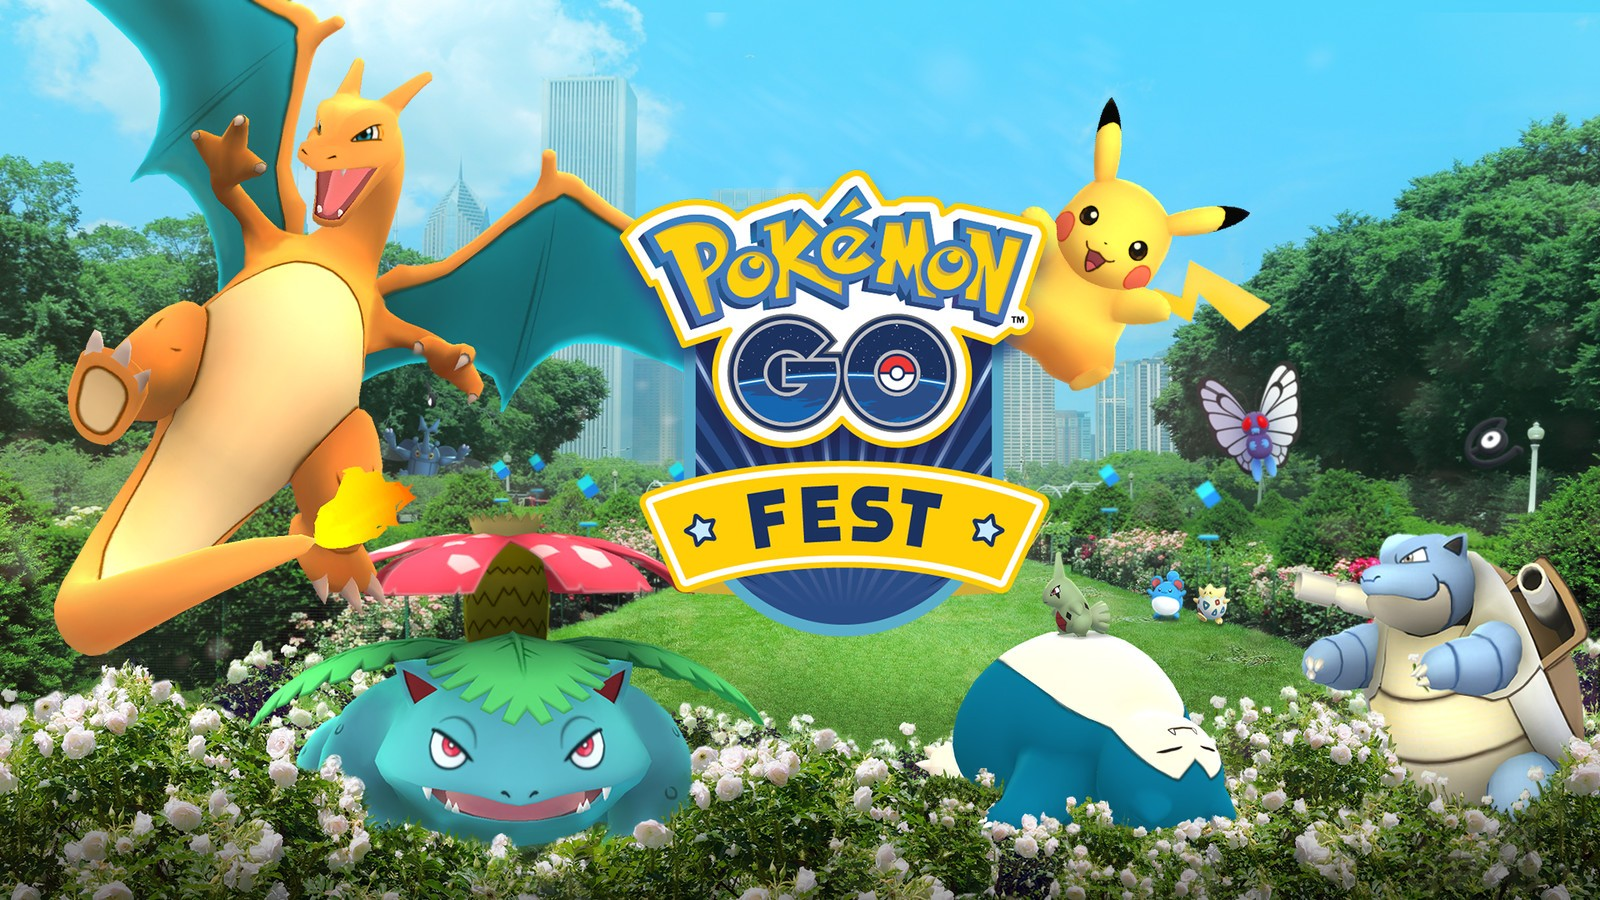 niantic pays $1.6 million settlement over failed pokemon go event